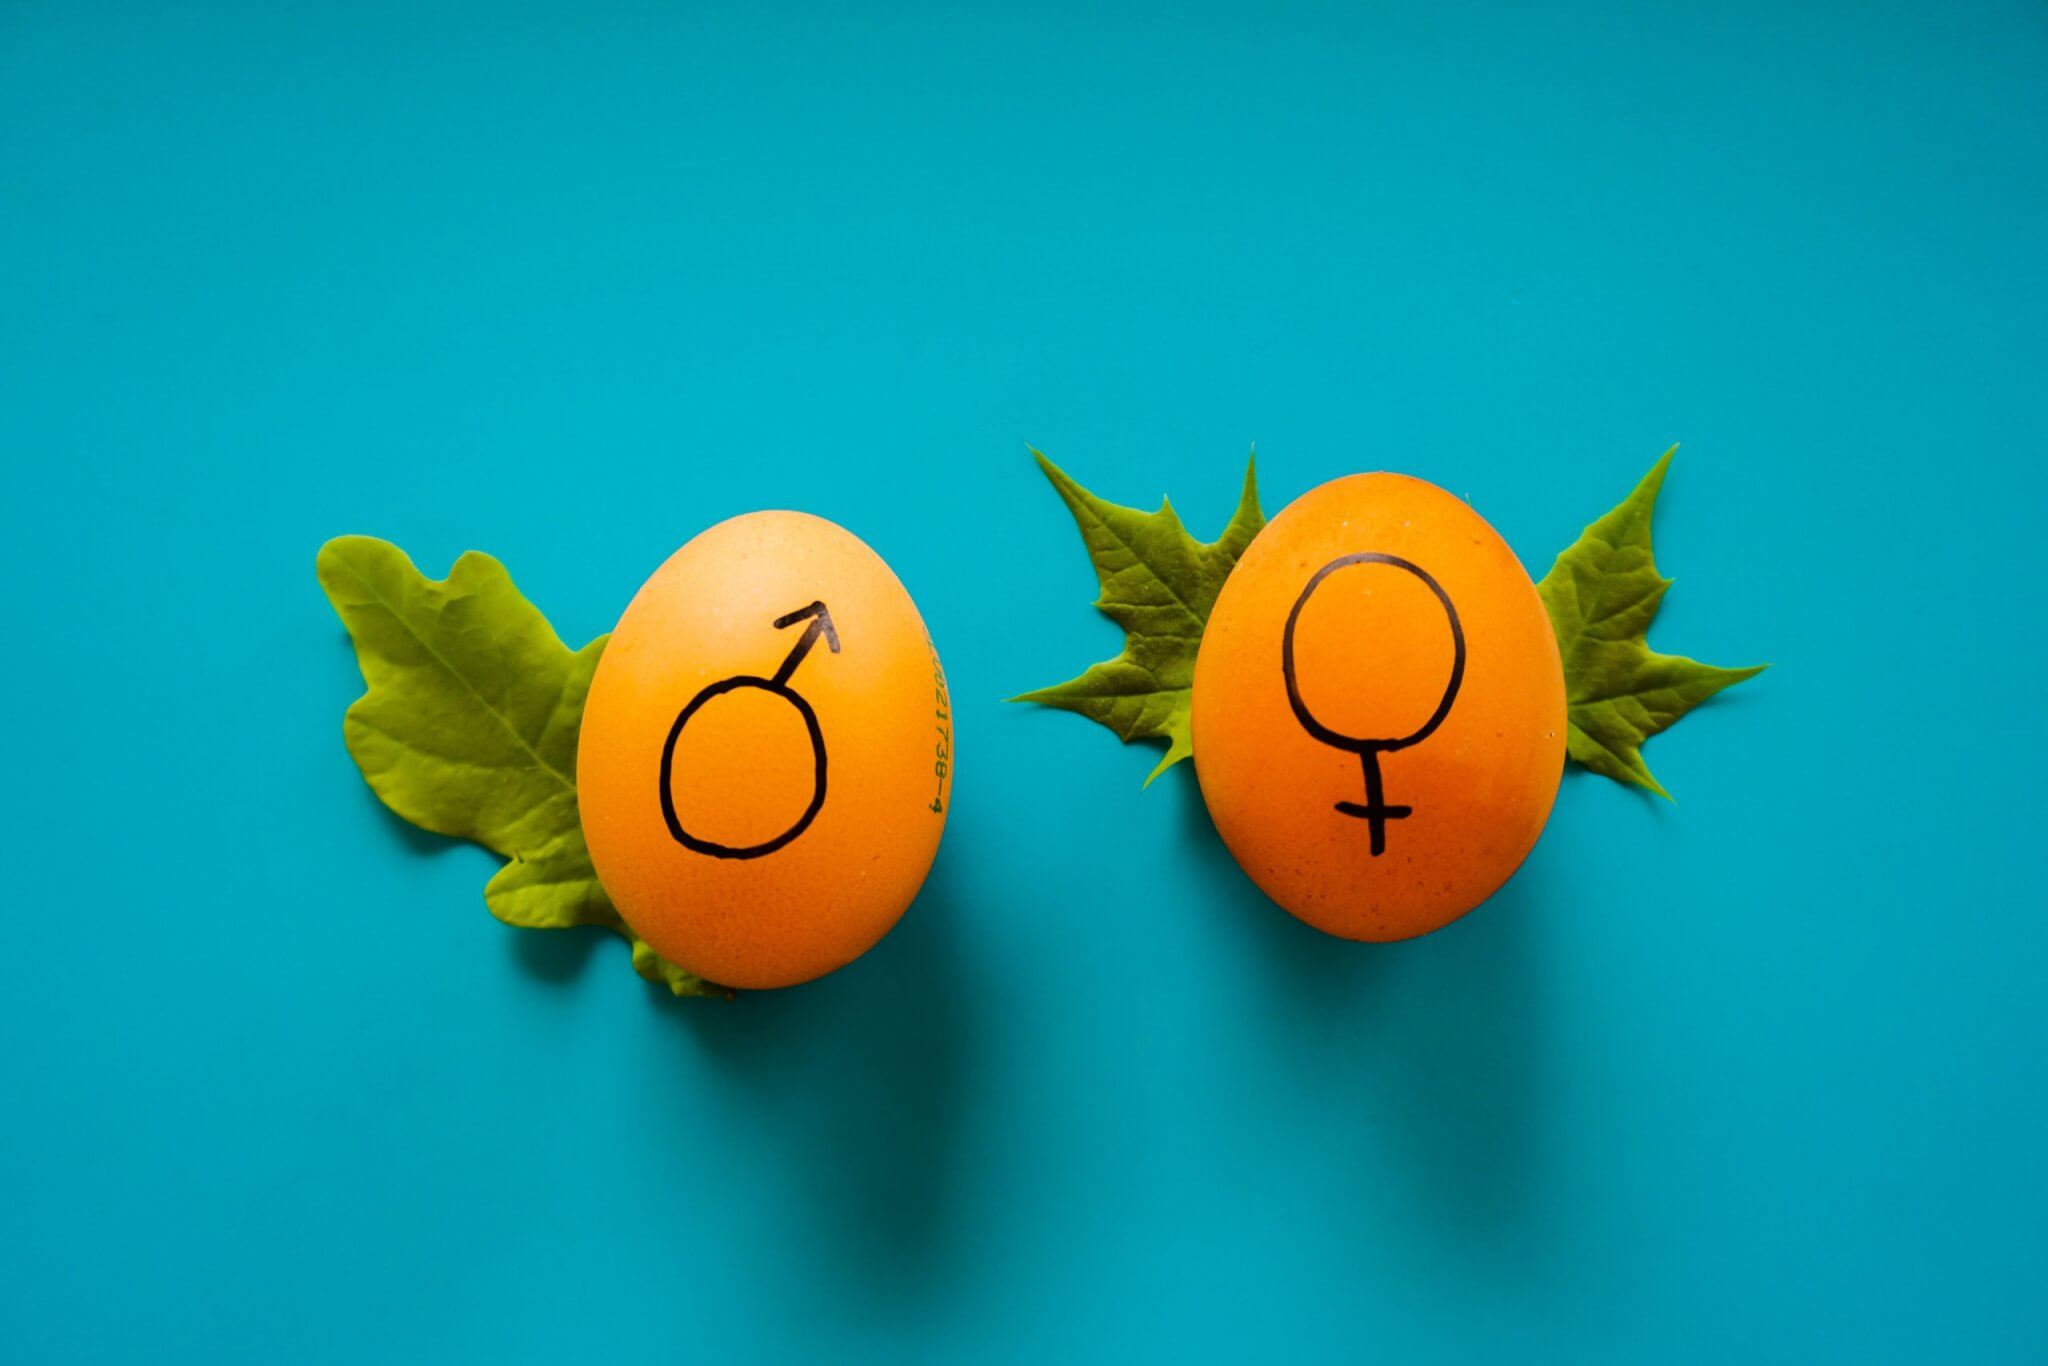 Gender-critical views protected under the Equality Act